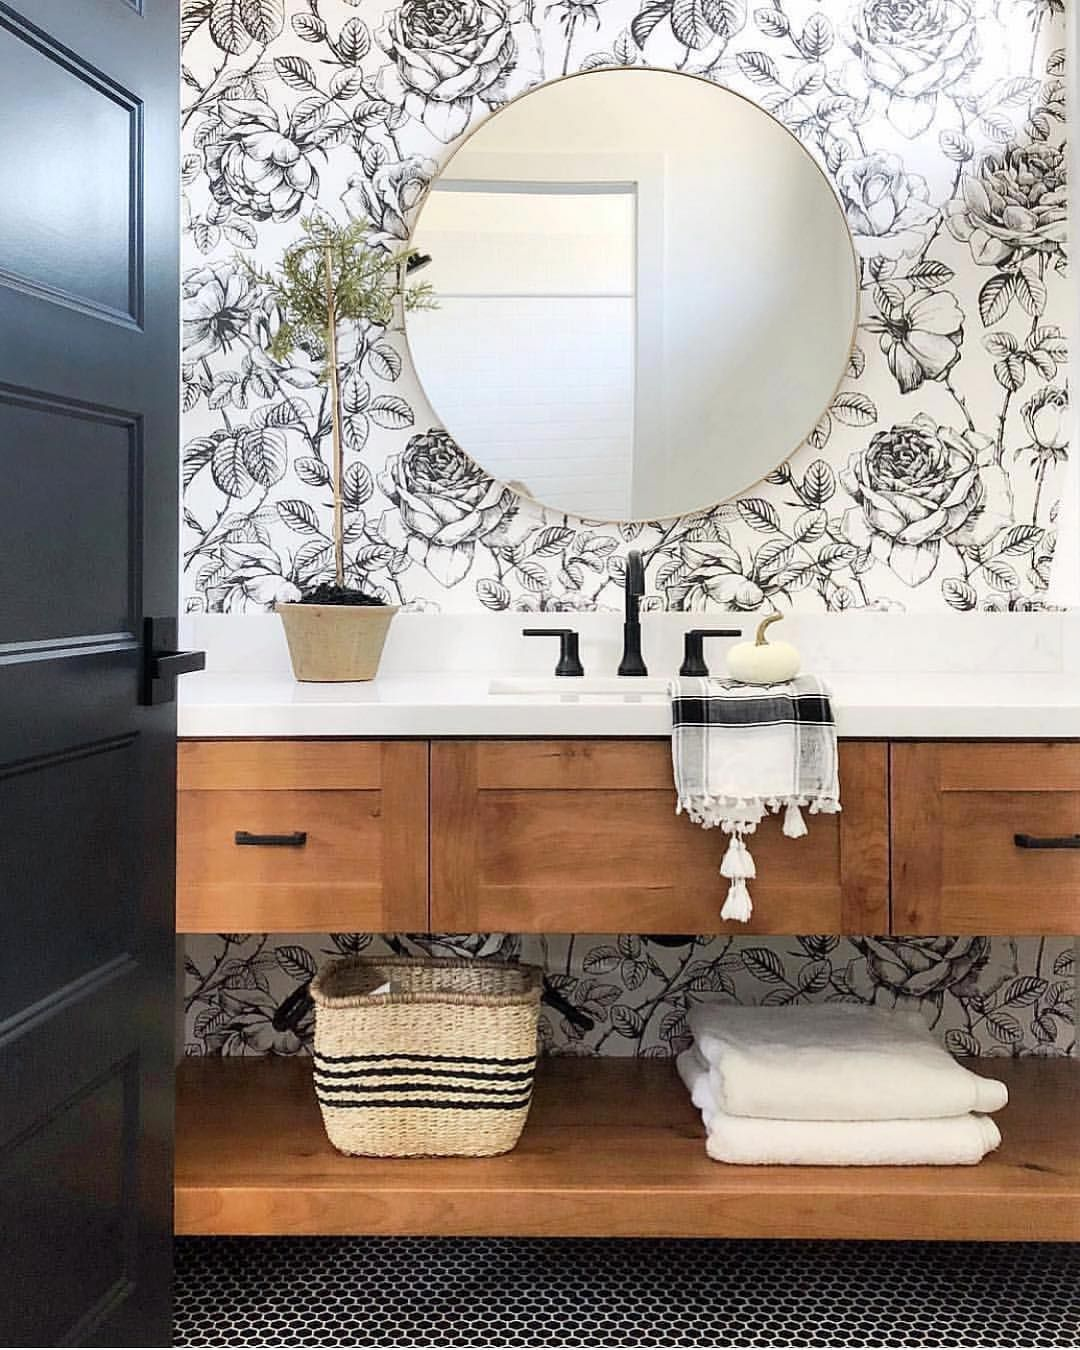 Hello And Happy Monday We Recently Finished Making Some Improvements To Our Kitchen And It Feels So Good To Be Home Decor Bathroom Inspiration Bathroom Decor